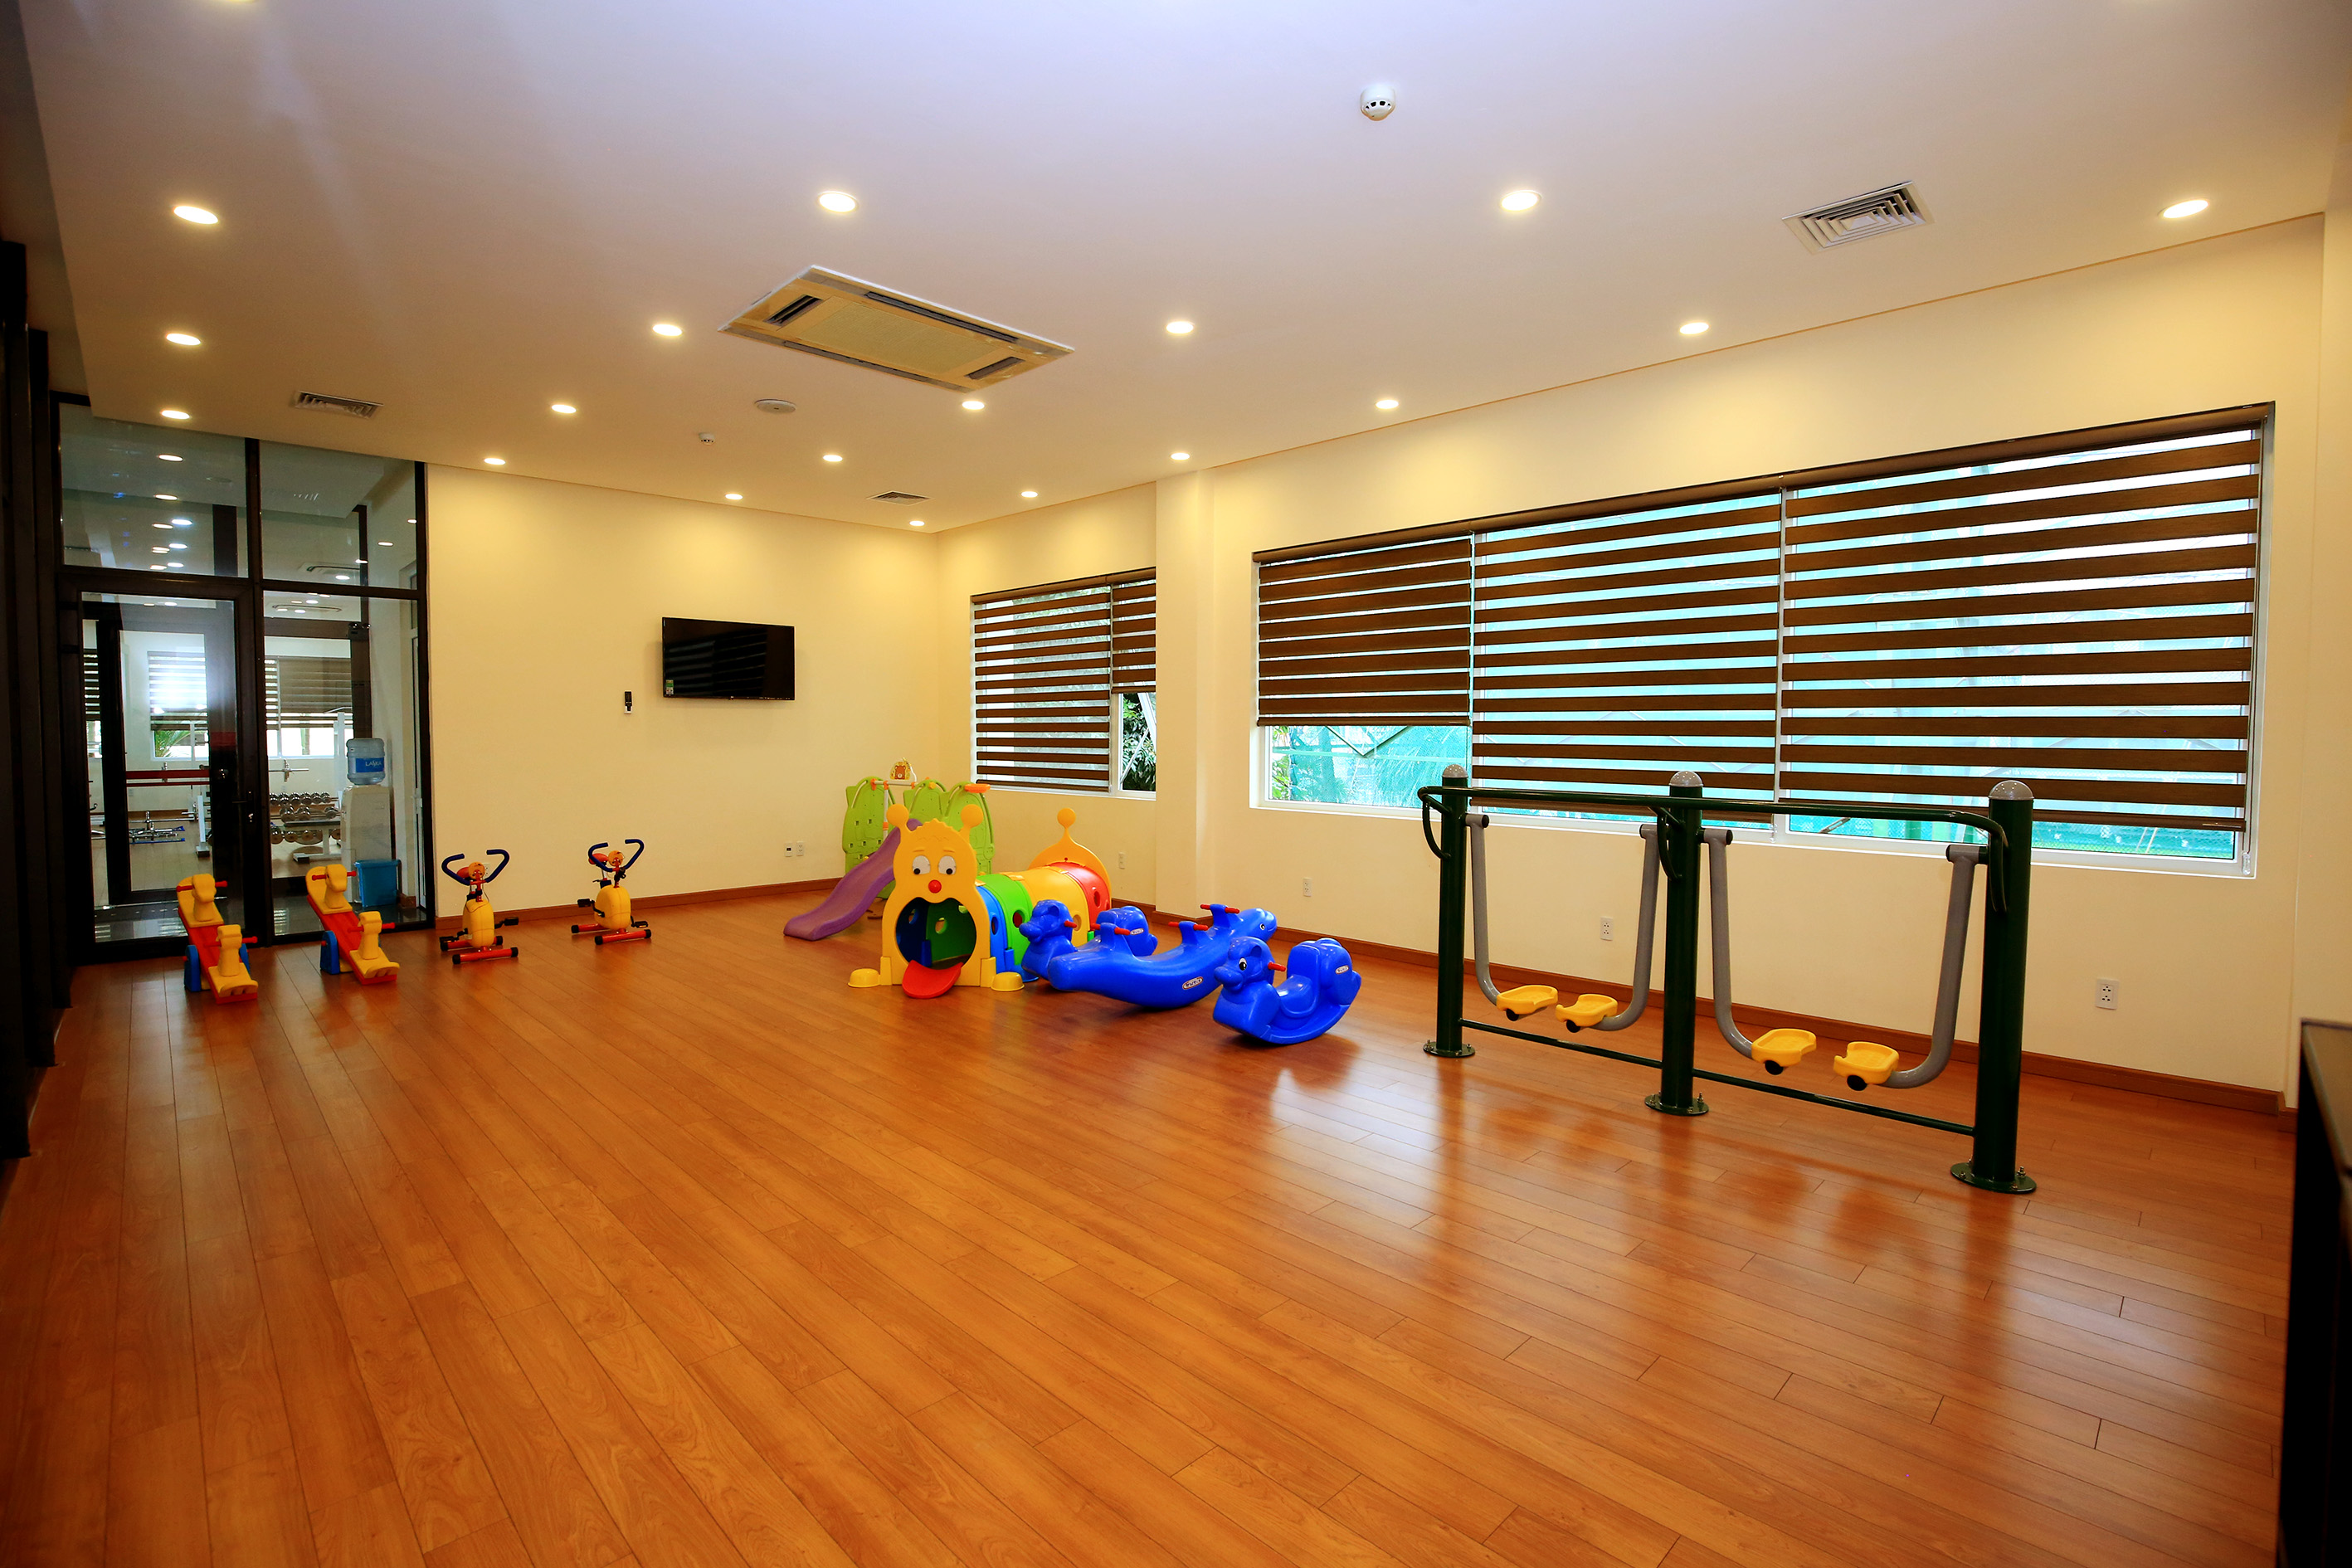 Gym & Kids Room